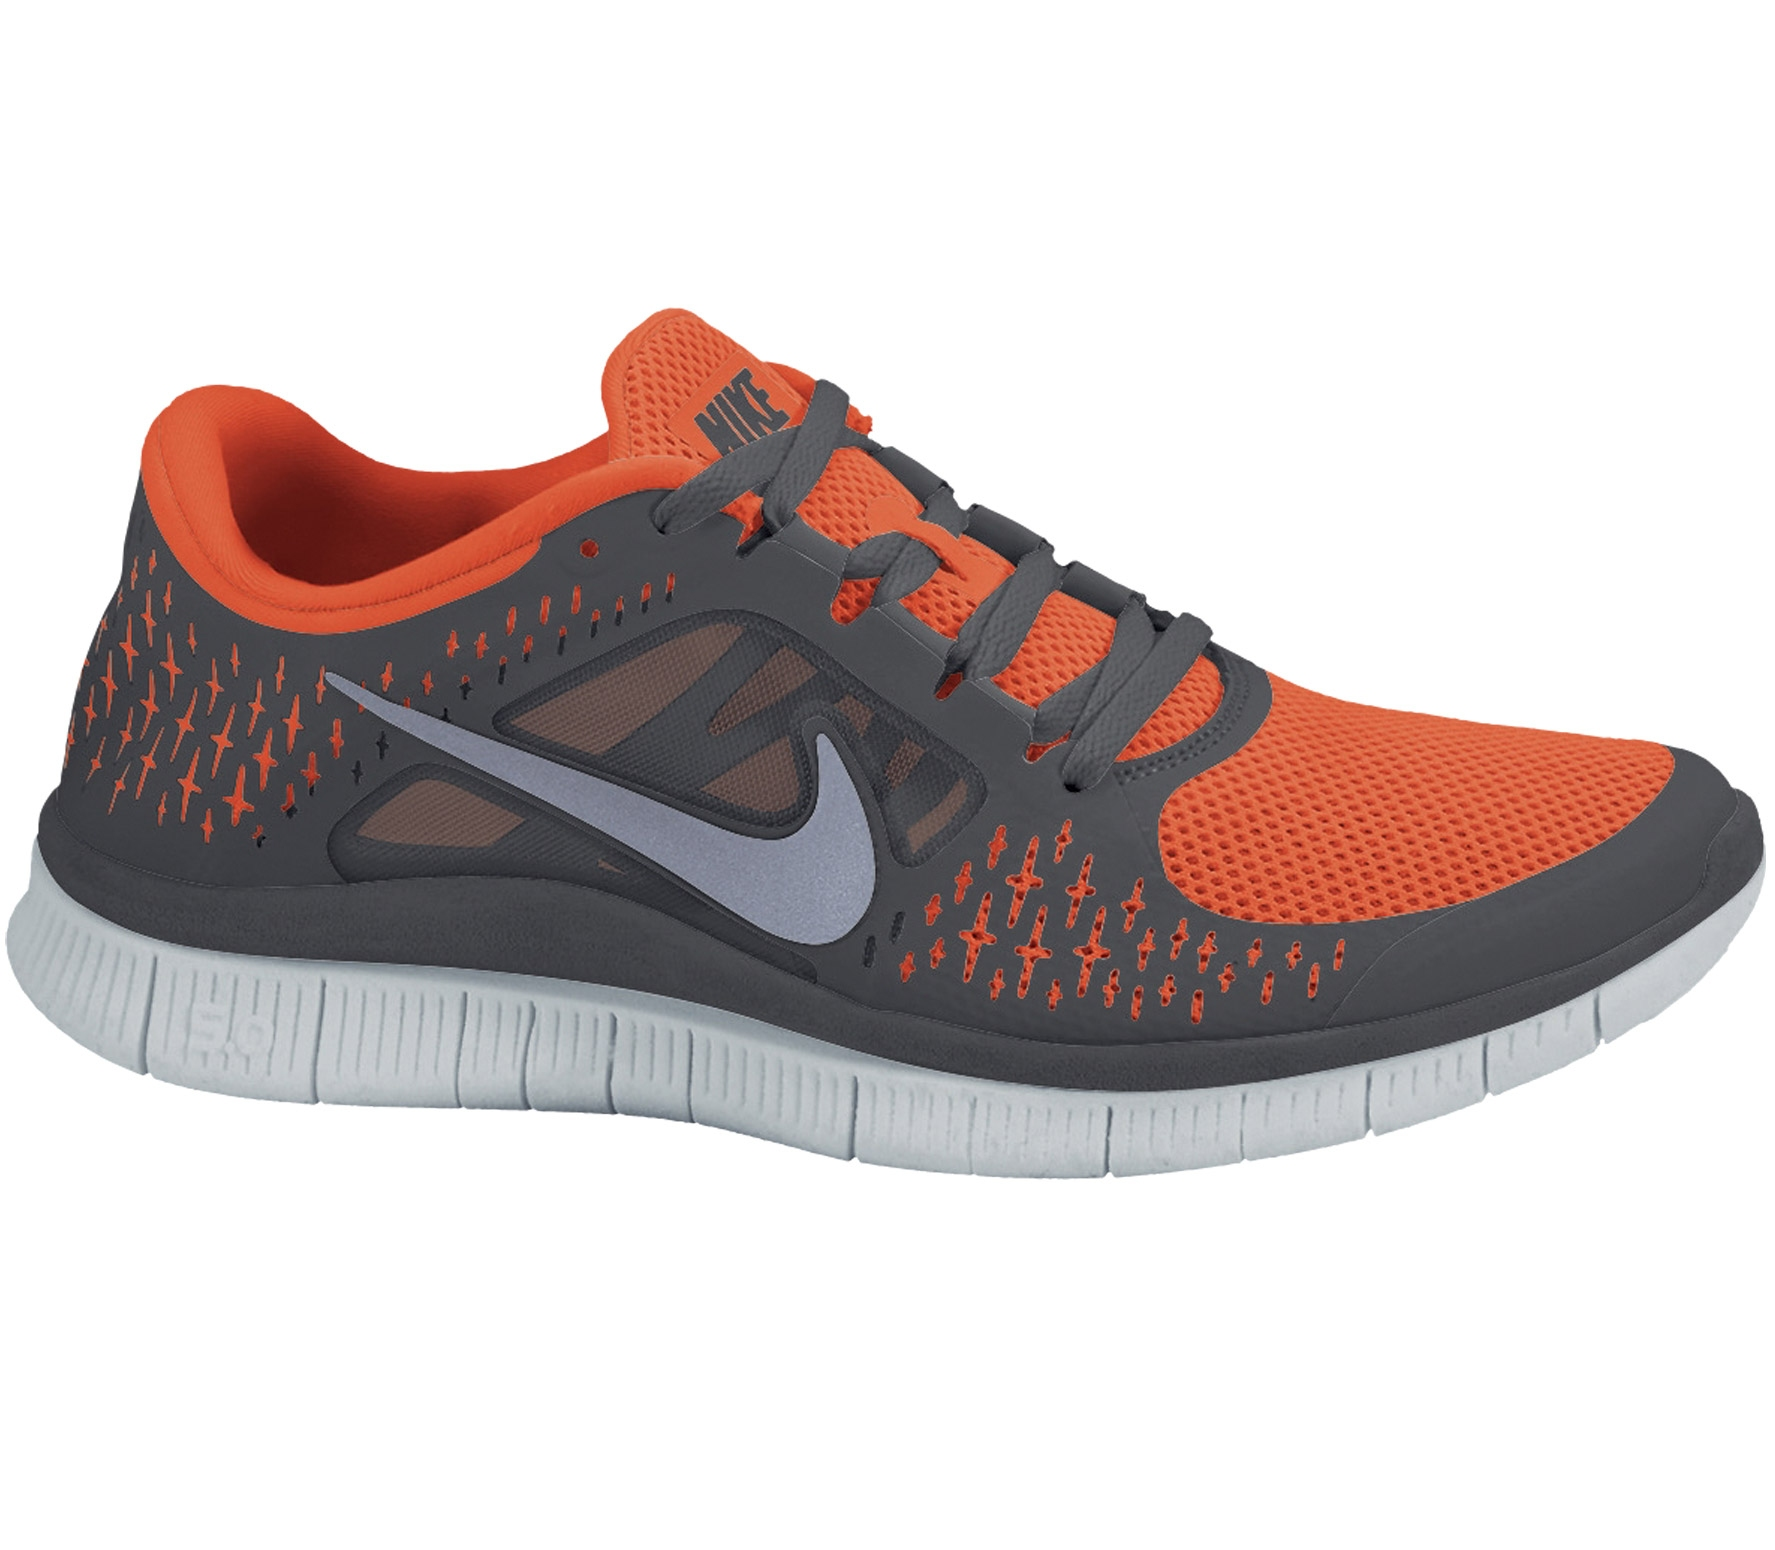 Photos - Nike Free Running Shoes Running Men S Shoes Nike Track Shoes